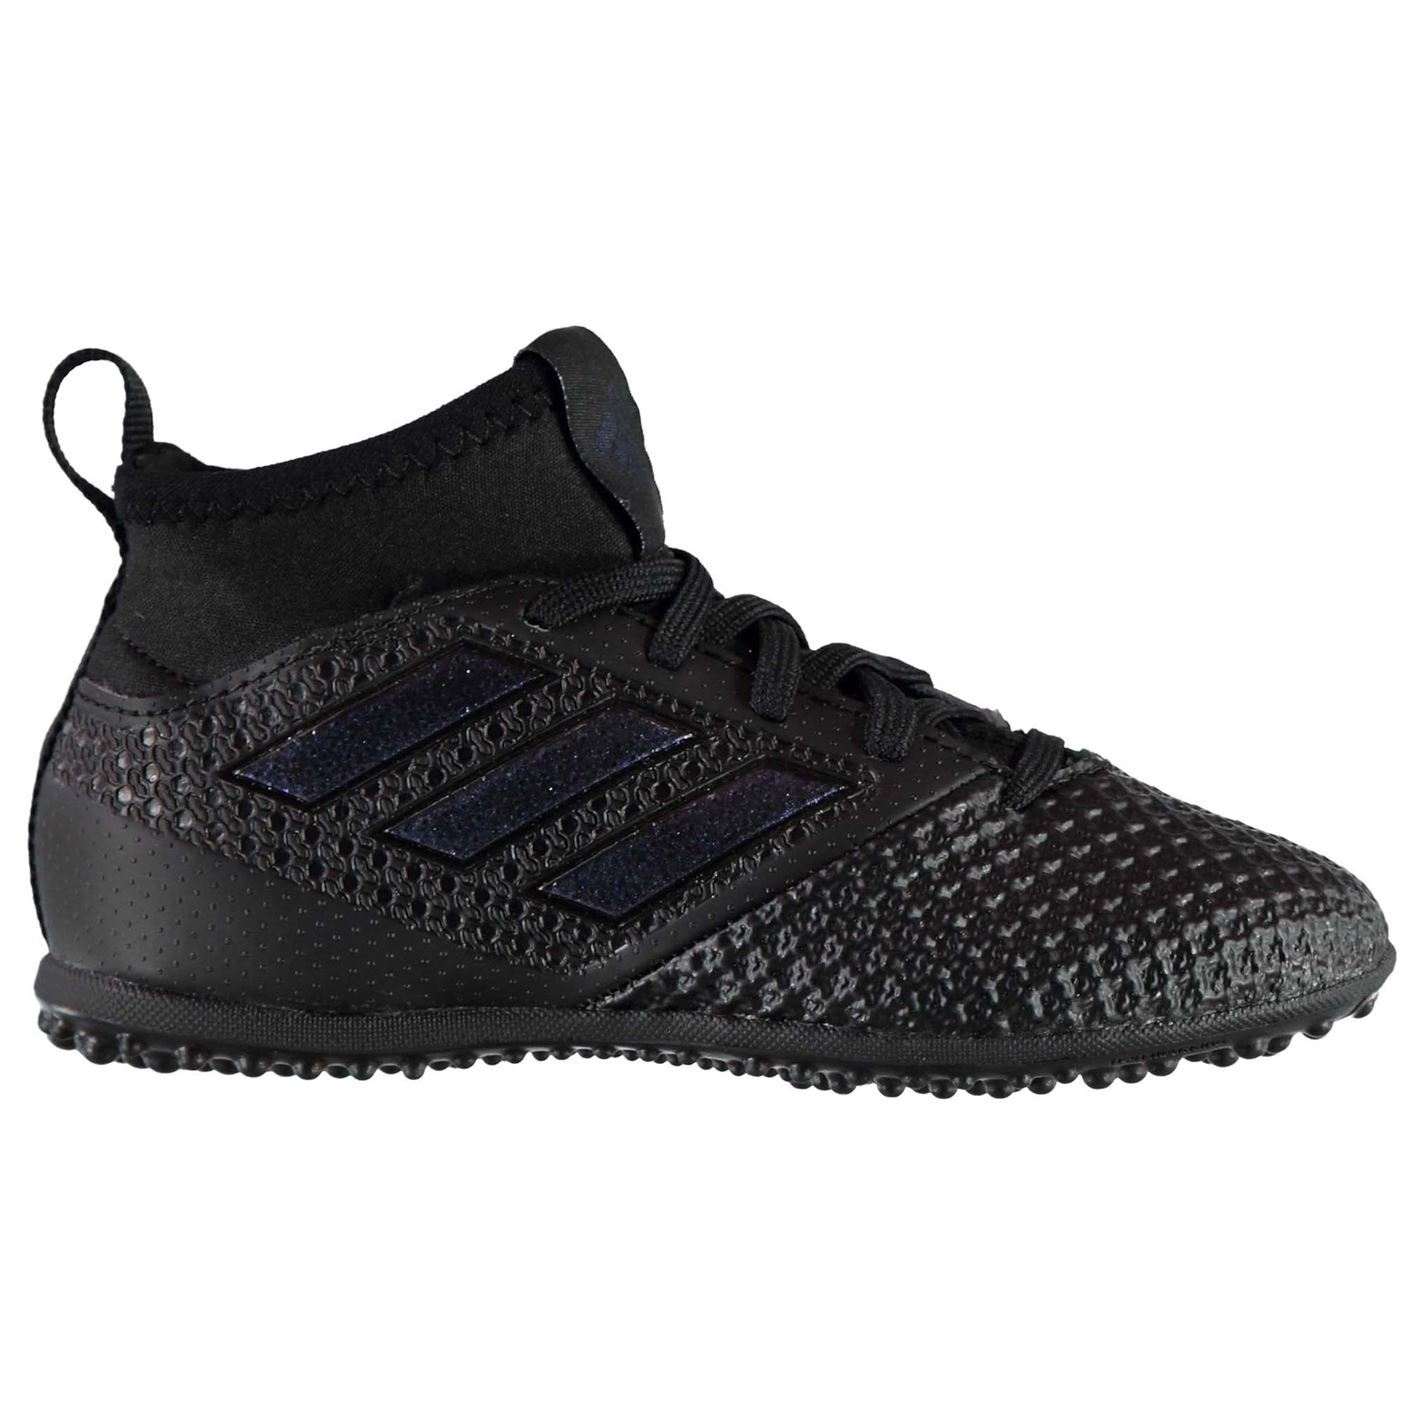 ea879be5fdea adidas Kids Ace 17.3 Primemesh Astro Turf Trainers Lace Up Football Boots  Shoes